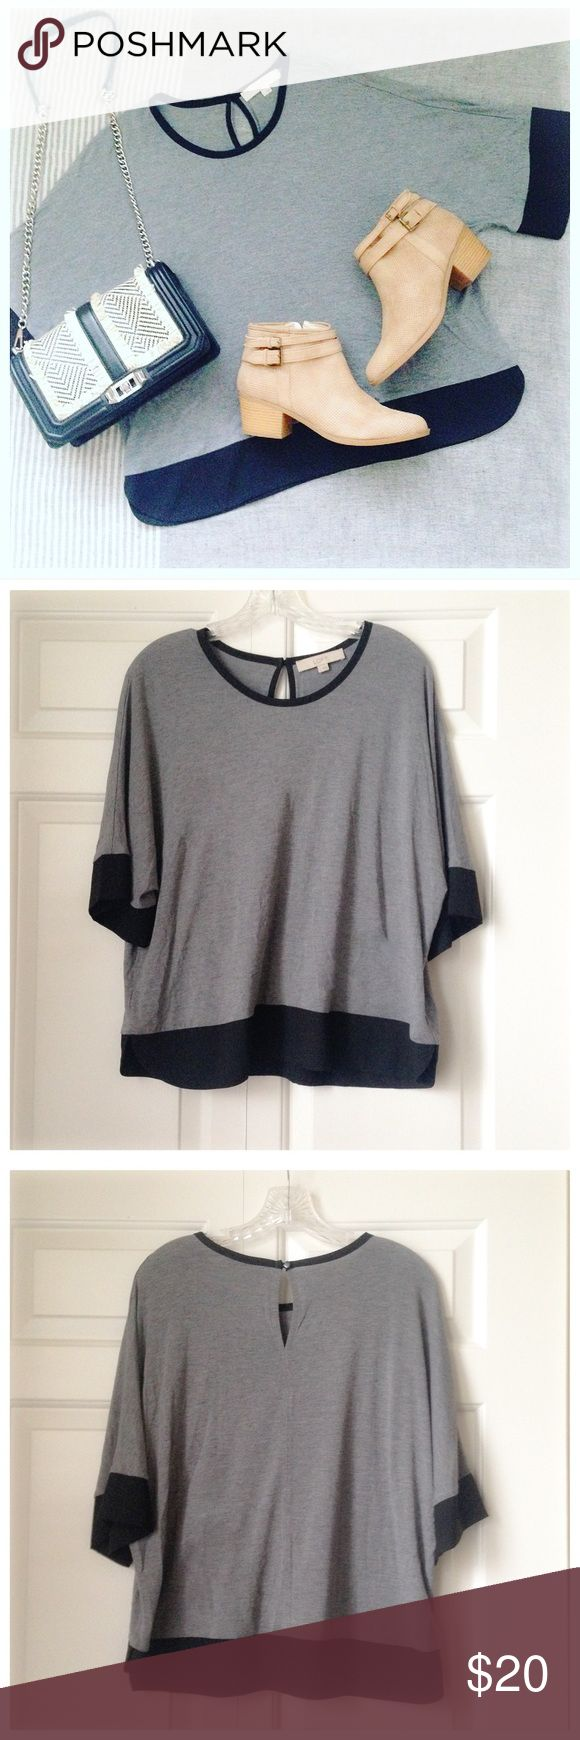 NWOT LOFT Grey and Black Batwing Top This NWOT grey and black batwing style top from Ann Taylor LOFT is simply chic! Such a fantastic wardrobe basic! With 3/4 sleeves, and an adorable keyhole feature on the back, this top is a must have for any fashionista. Just throw on with jeans and your favorite booties, and you're looking effortlessly stylish! ✨THIS ITEM IS NWOT NEVER WORN IN PERFECT CONDITION. ALL PURCHASES COME WITH LOVELY BONUS GIFTS✨ LOFT Tops Tees - Short Sleeve